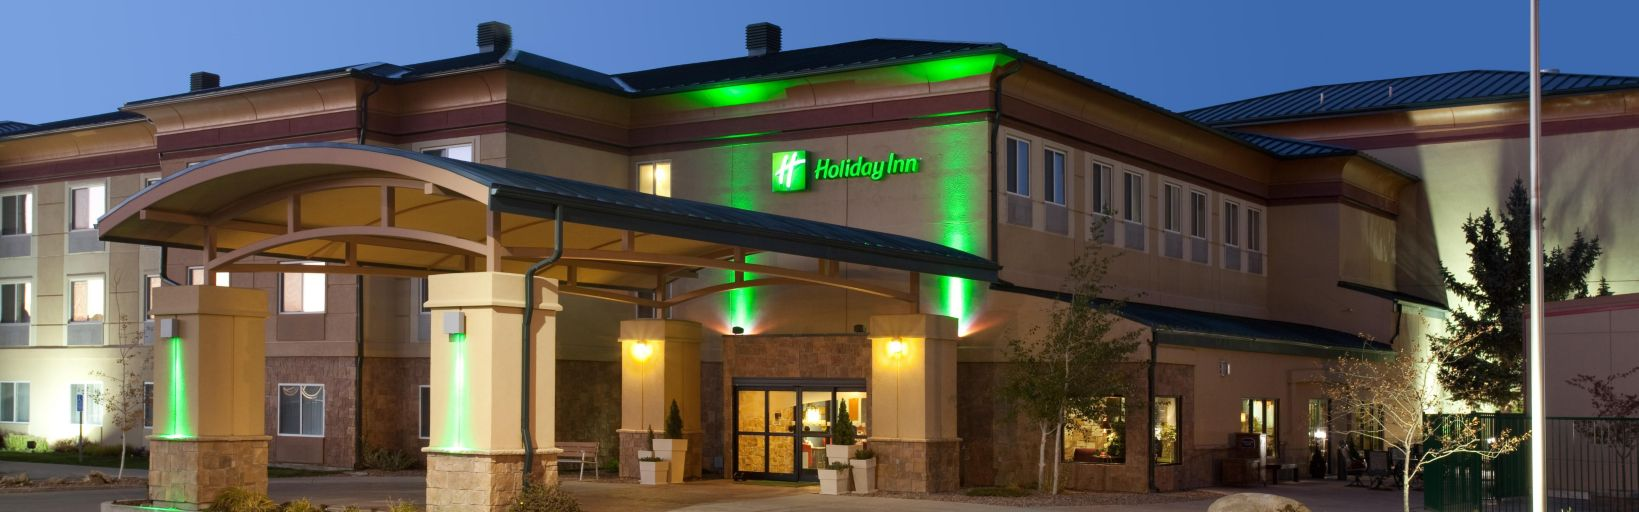 Holiday Inn Express, Rock Springs, Wyoming